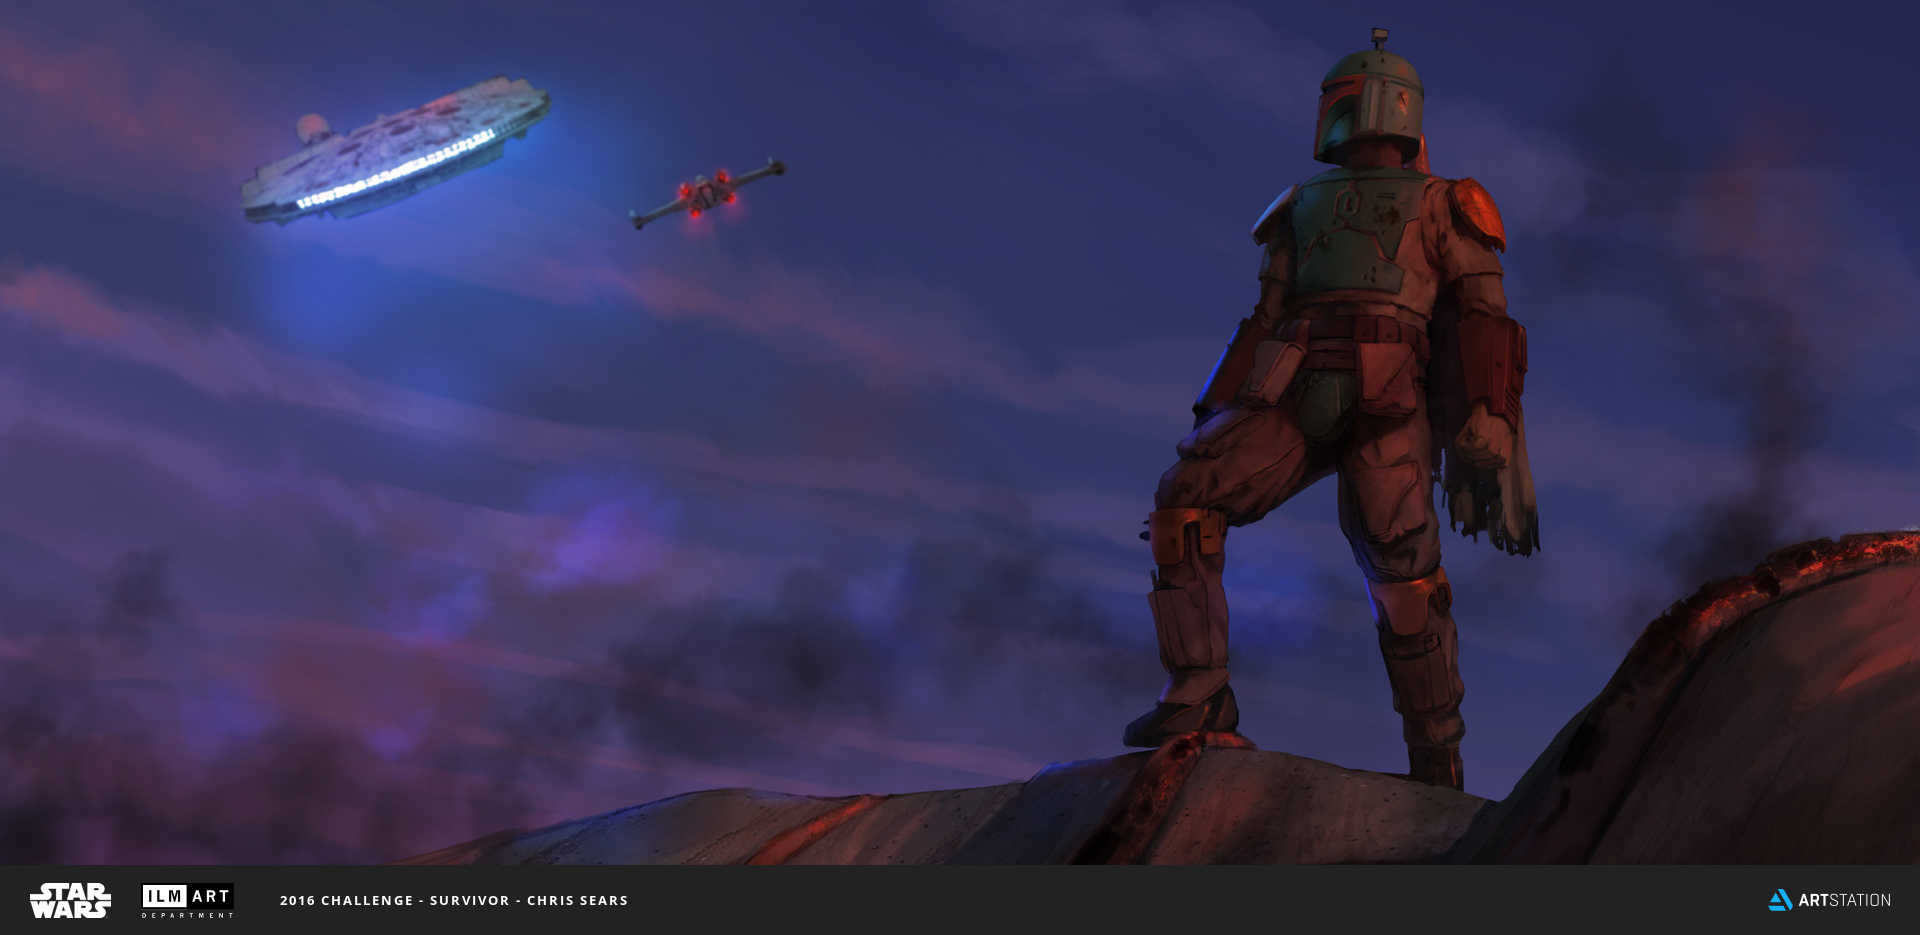 2016 ILM Art Department Challenge Entry by Chris Sears